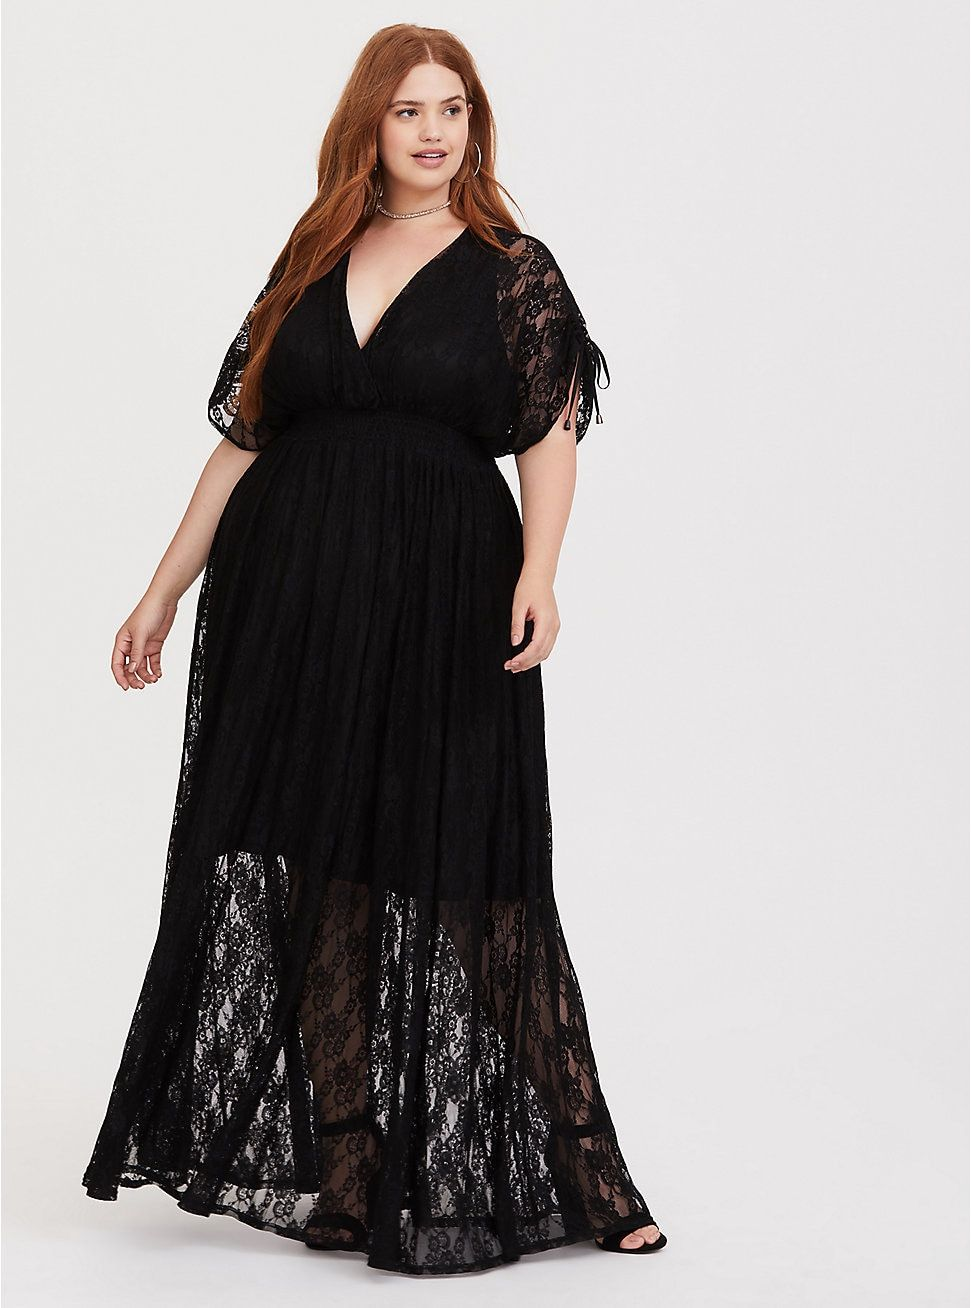 Plus size maxi dresses for summer wedding  Black Stretch Lace Maxi Dress in   Plus Size Date SpringSummer